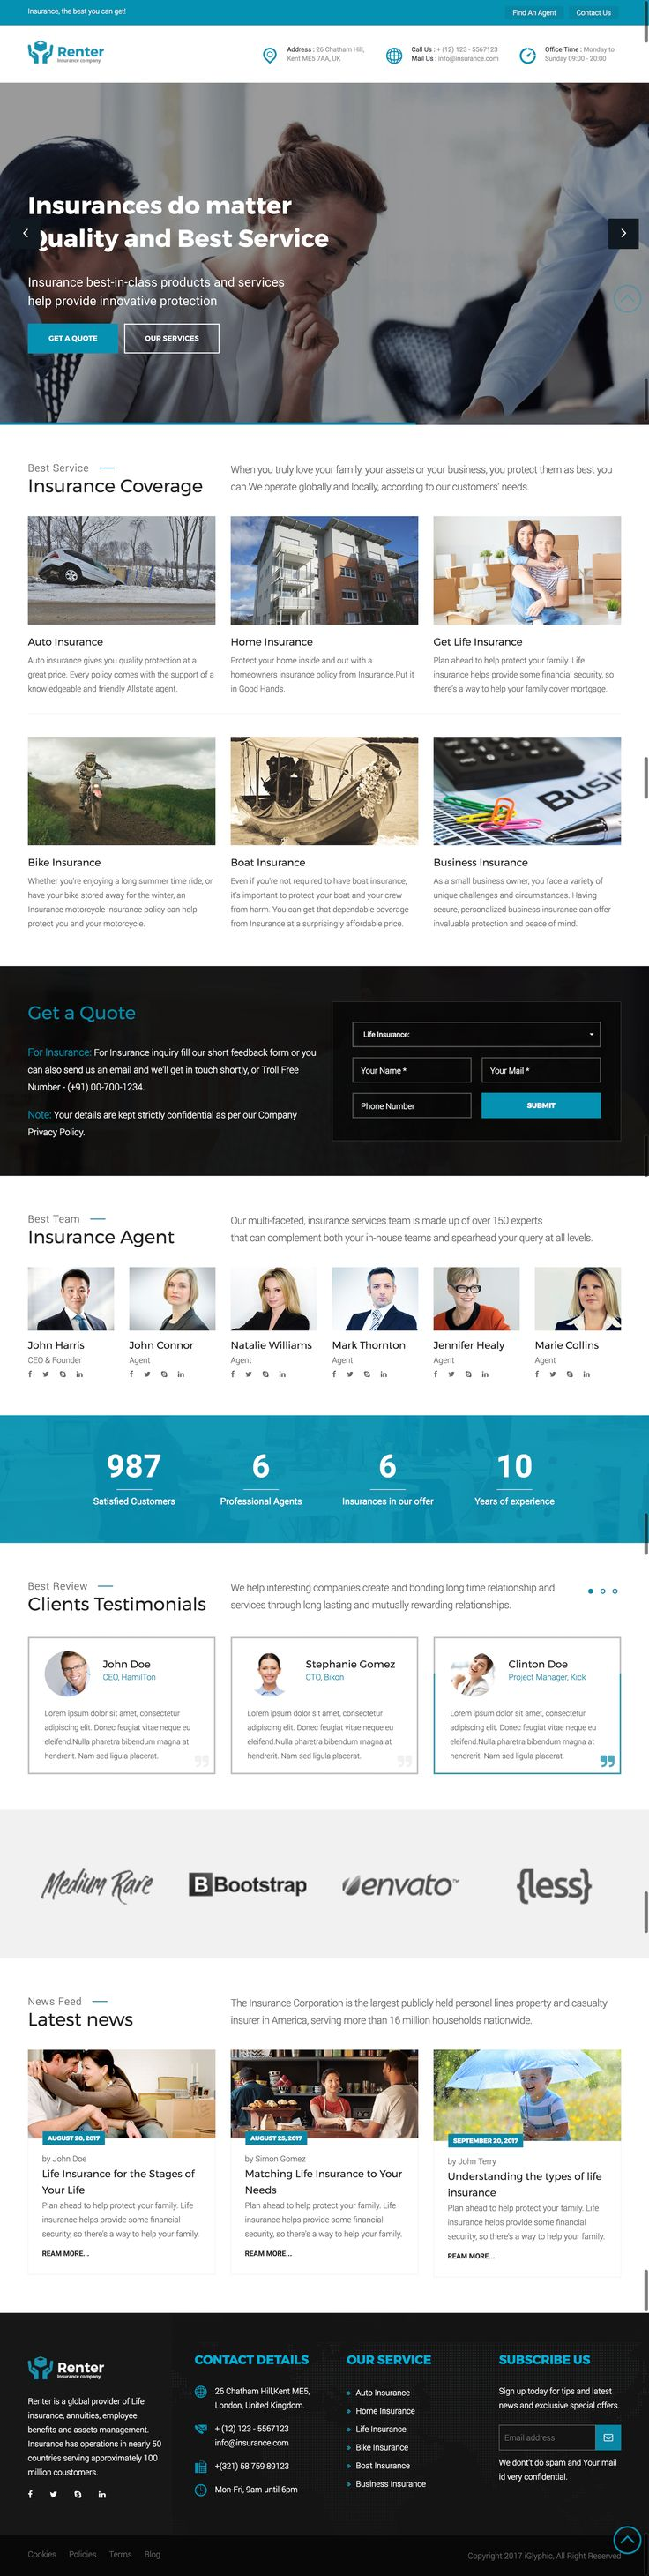 #RenterHtmlTemplate #Renter #iGlyphic #EnvatoMarket #themeforest   Renter is a clean and professional HTML template specially designed for insurance business or small insurance agency. This template comes with twitter bootstrap 3, Owl Carousel, Accordion and more.